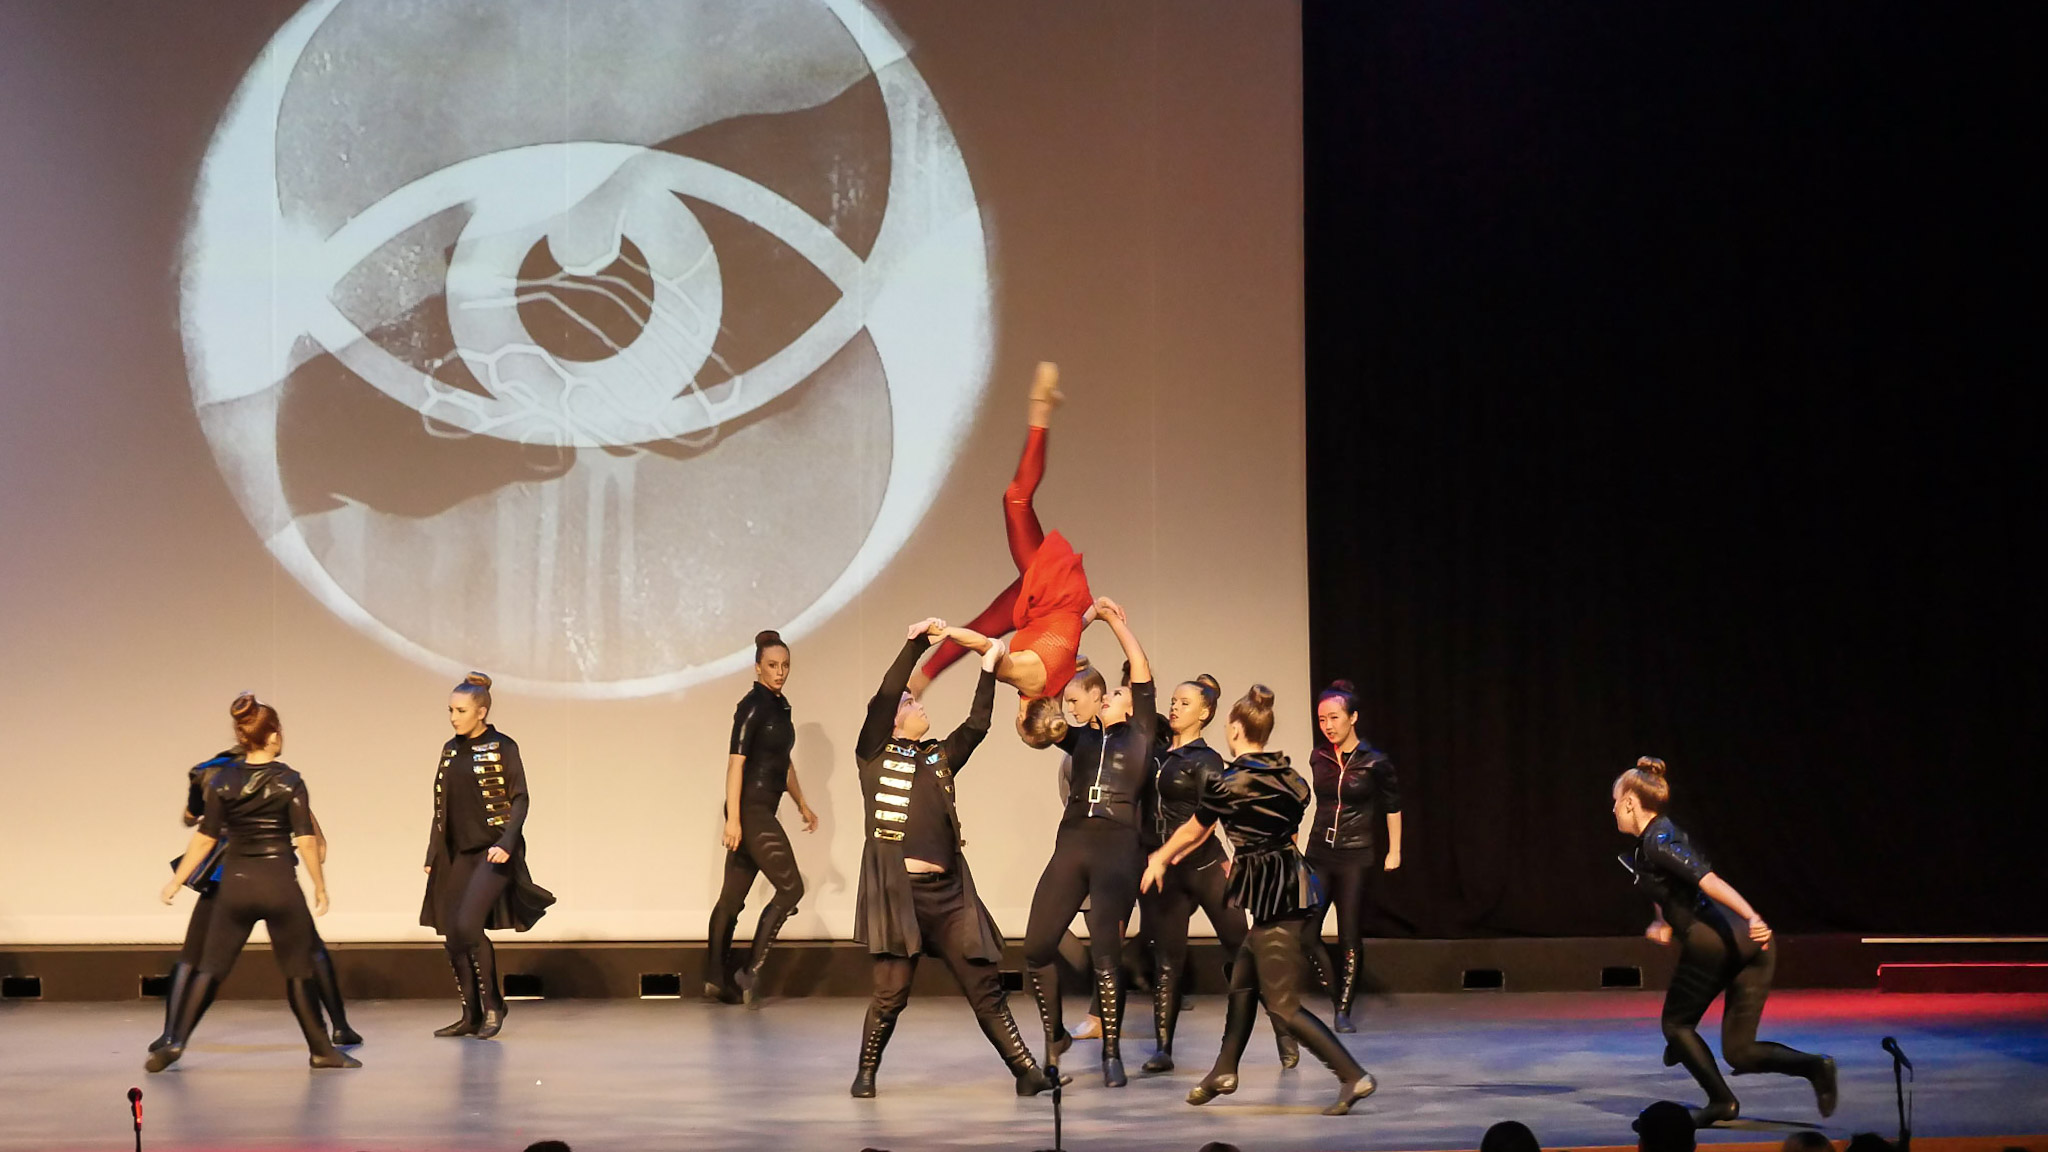 Divergent Dance Team Performing an Arial